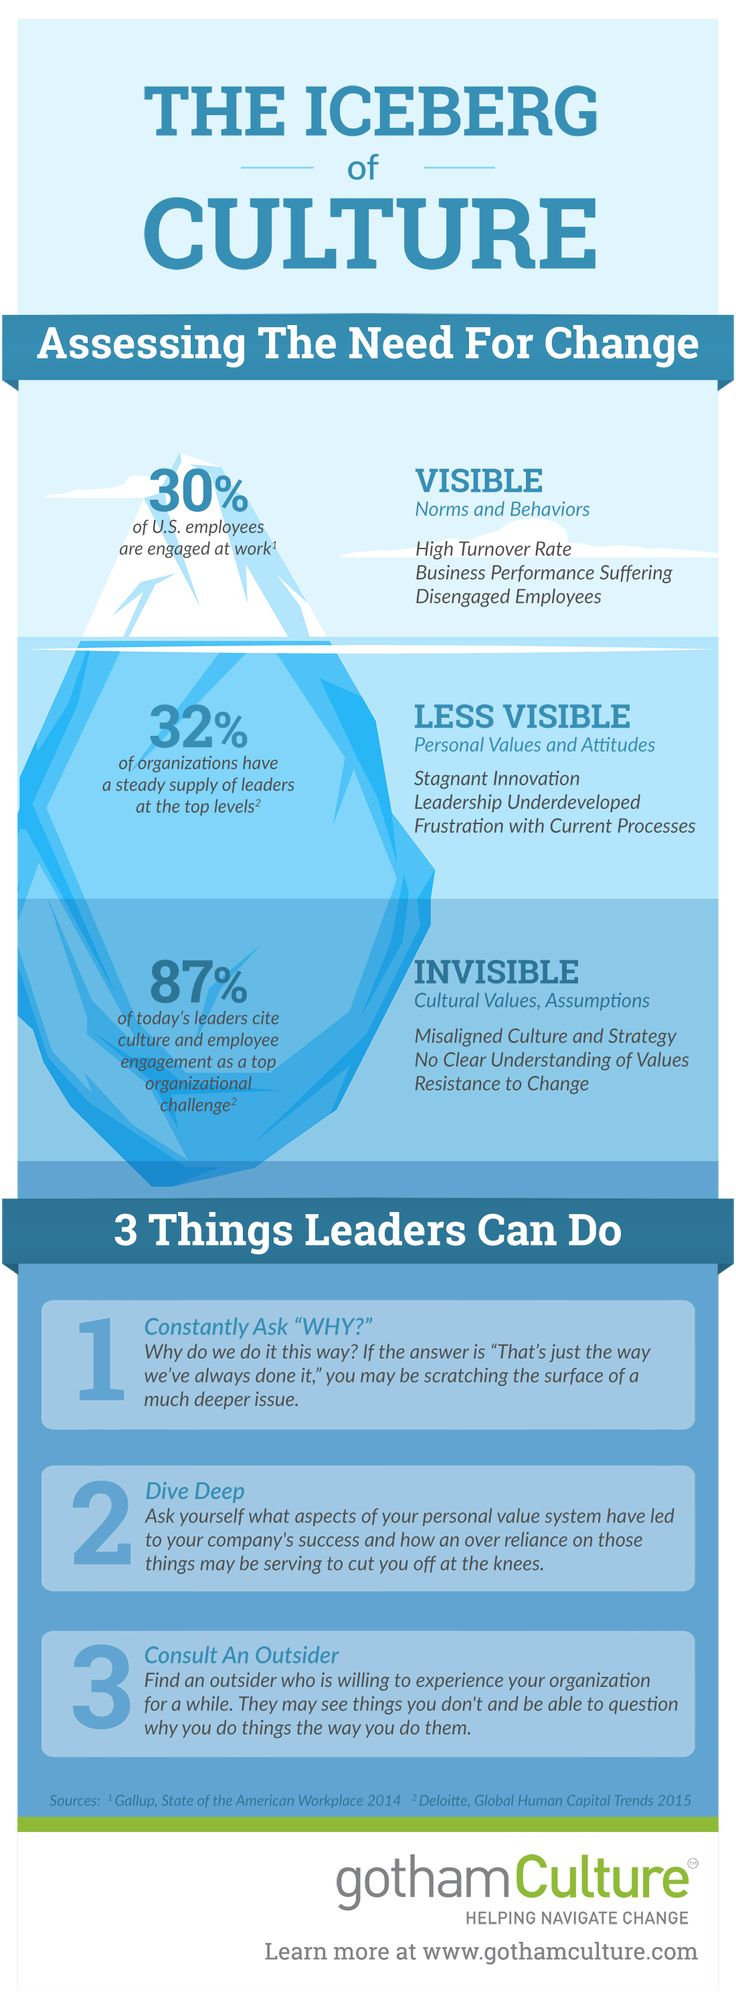 Culture change, only 1/3 is visible! Check out why: https://www.toolshero.com/infographics/iceberg-culture/ #managementinfographic #organizationalchange